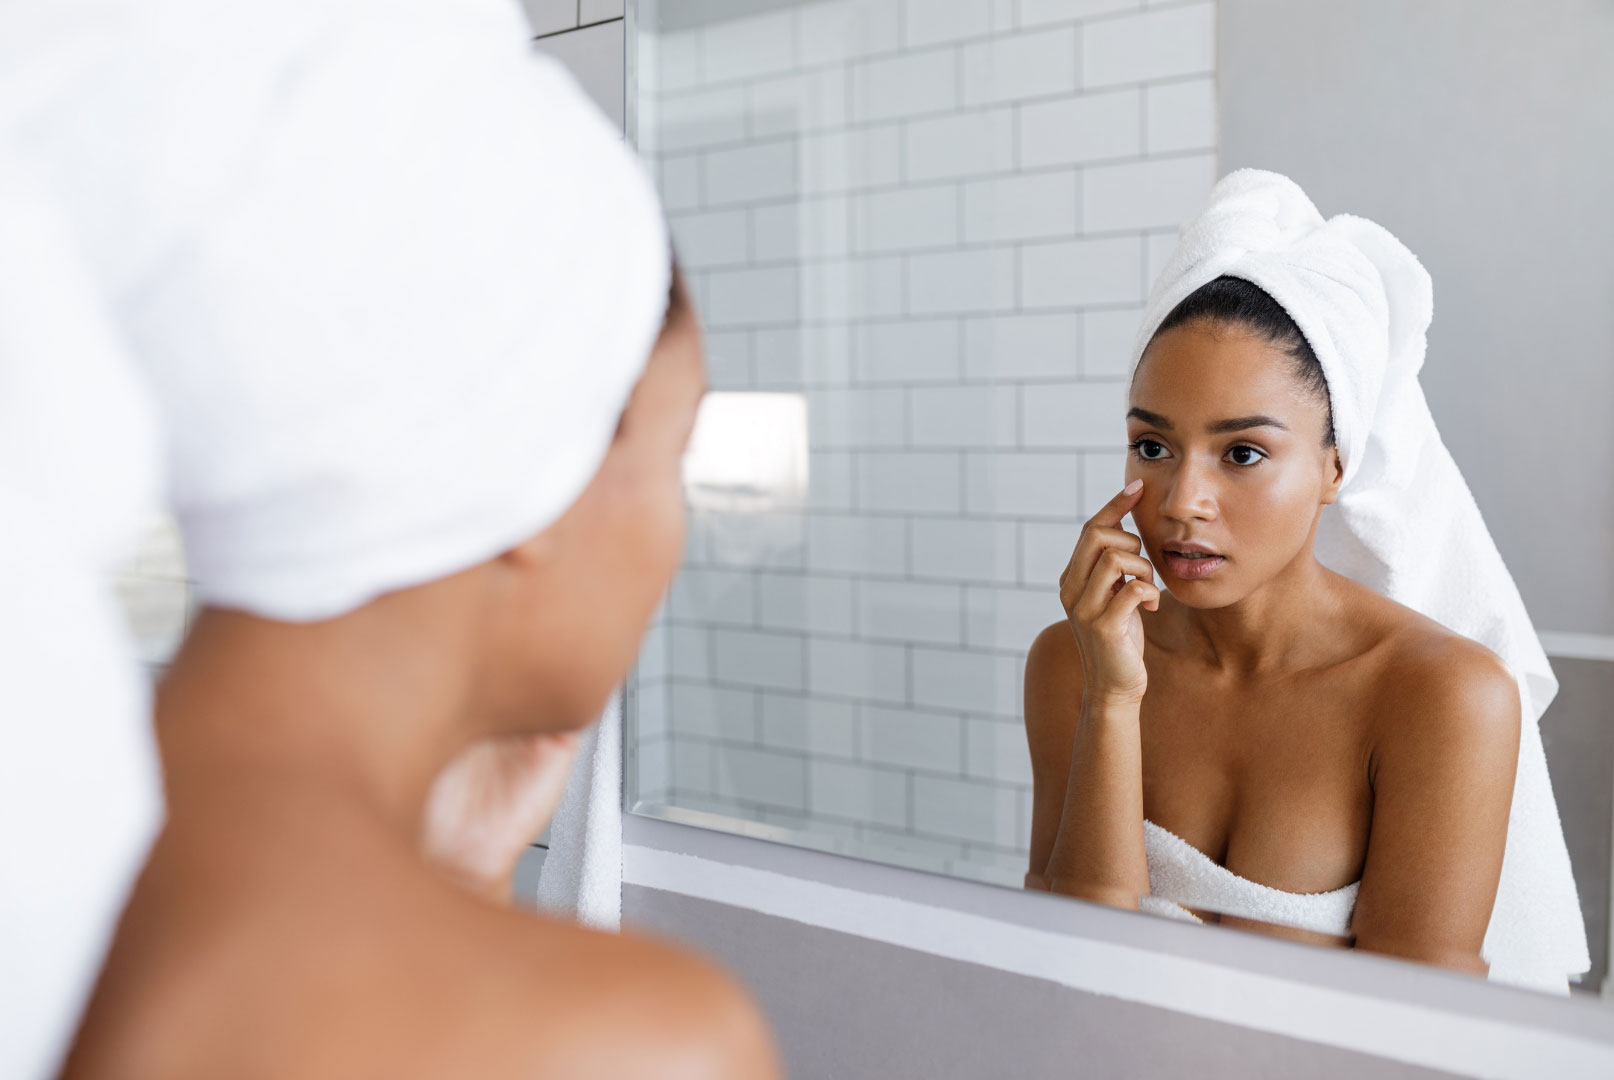 Body Dysmorphia: The Facts, Signs and Treatment